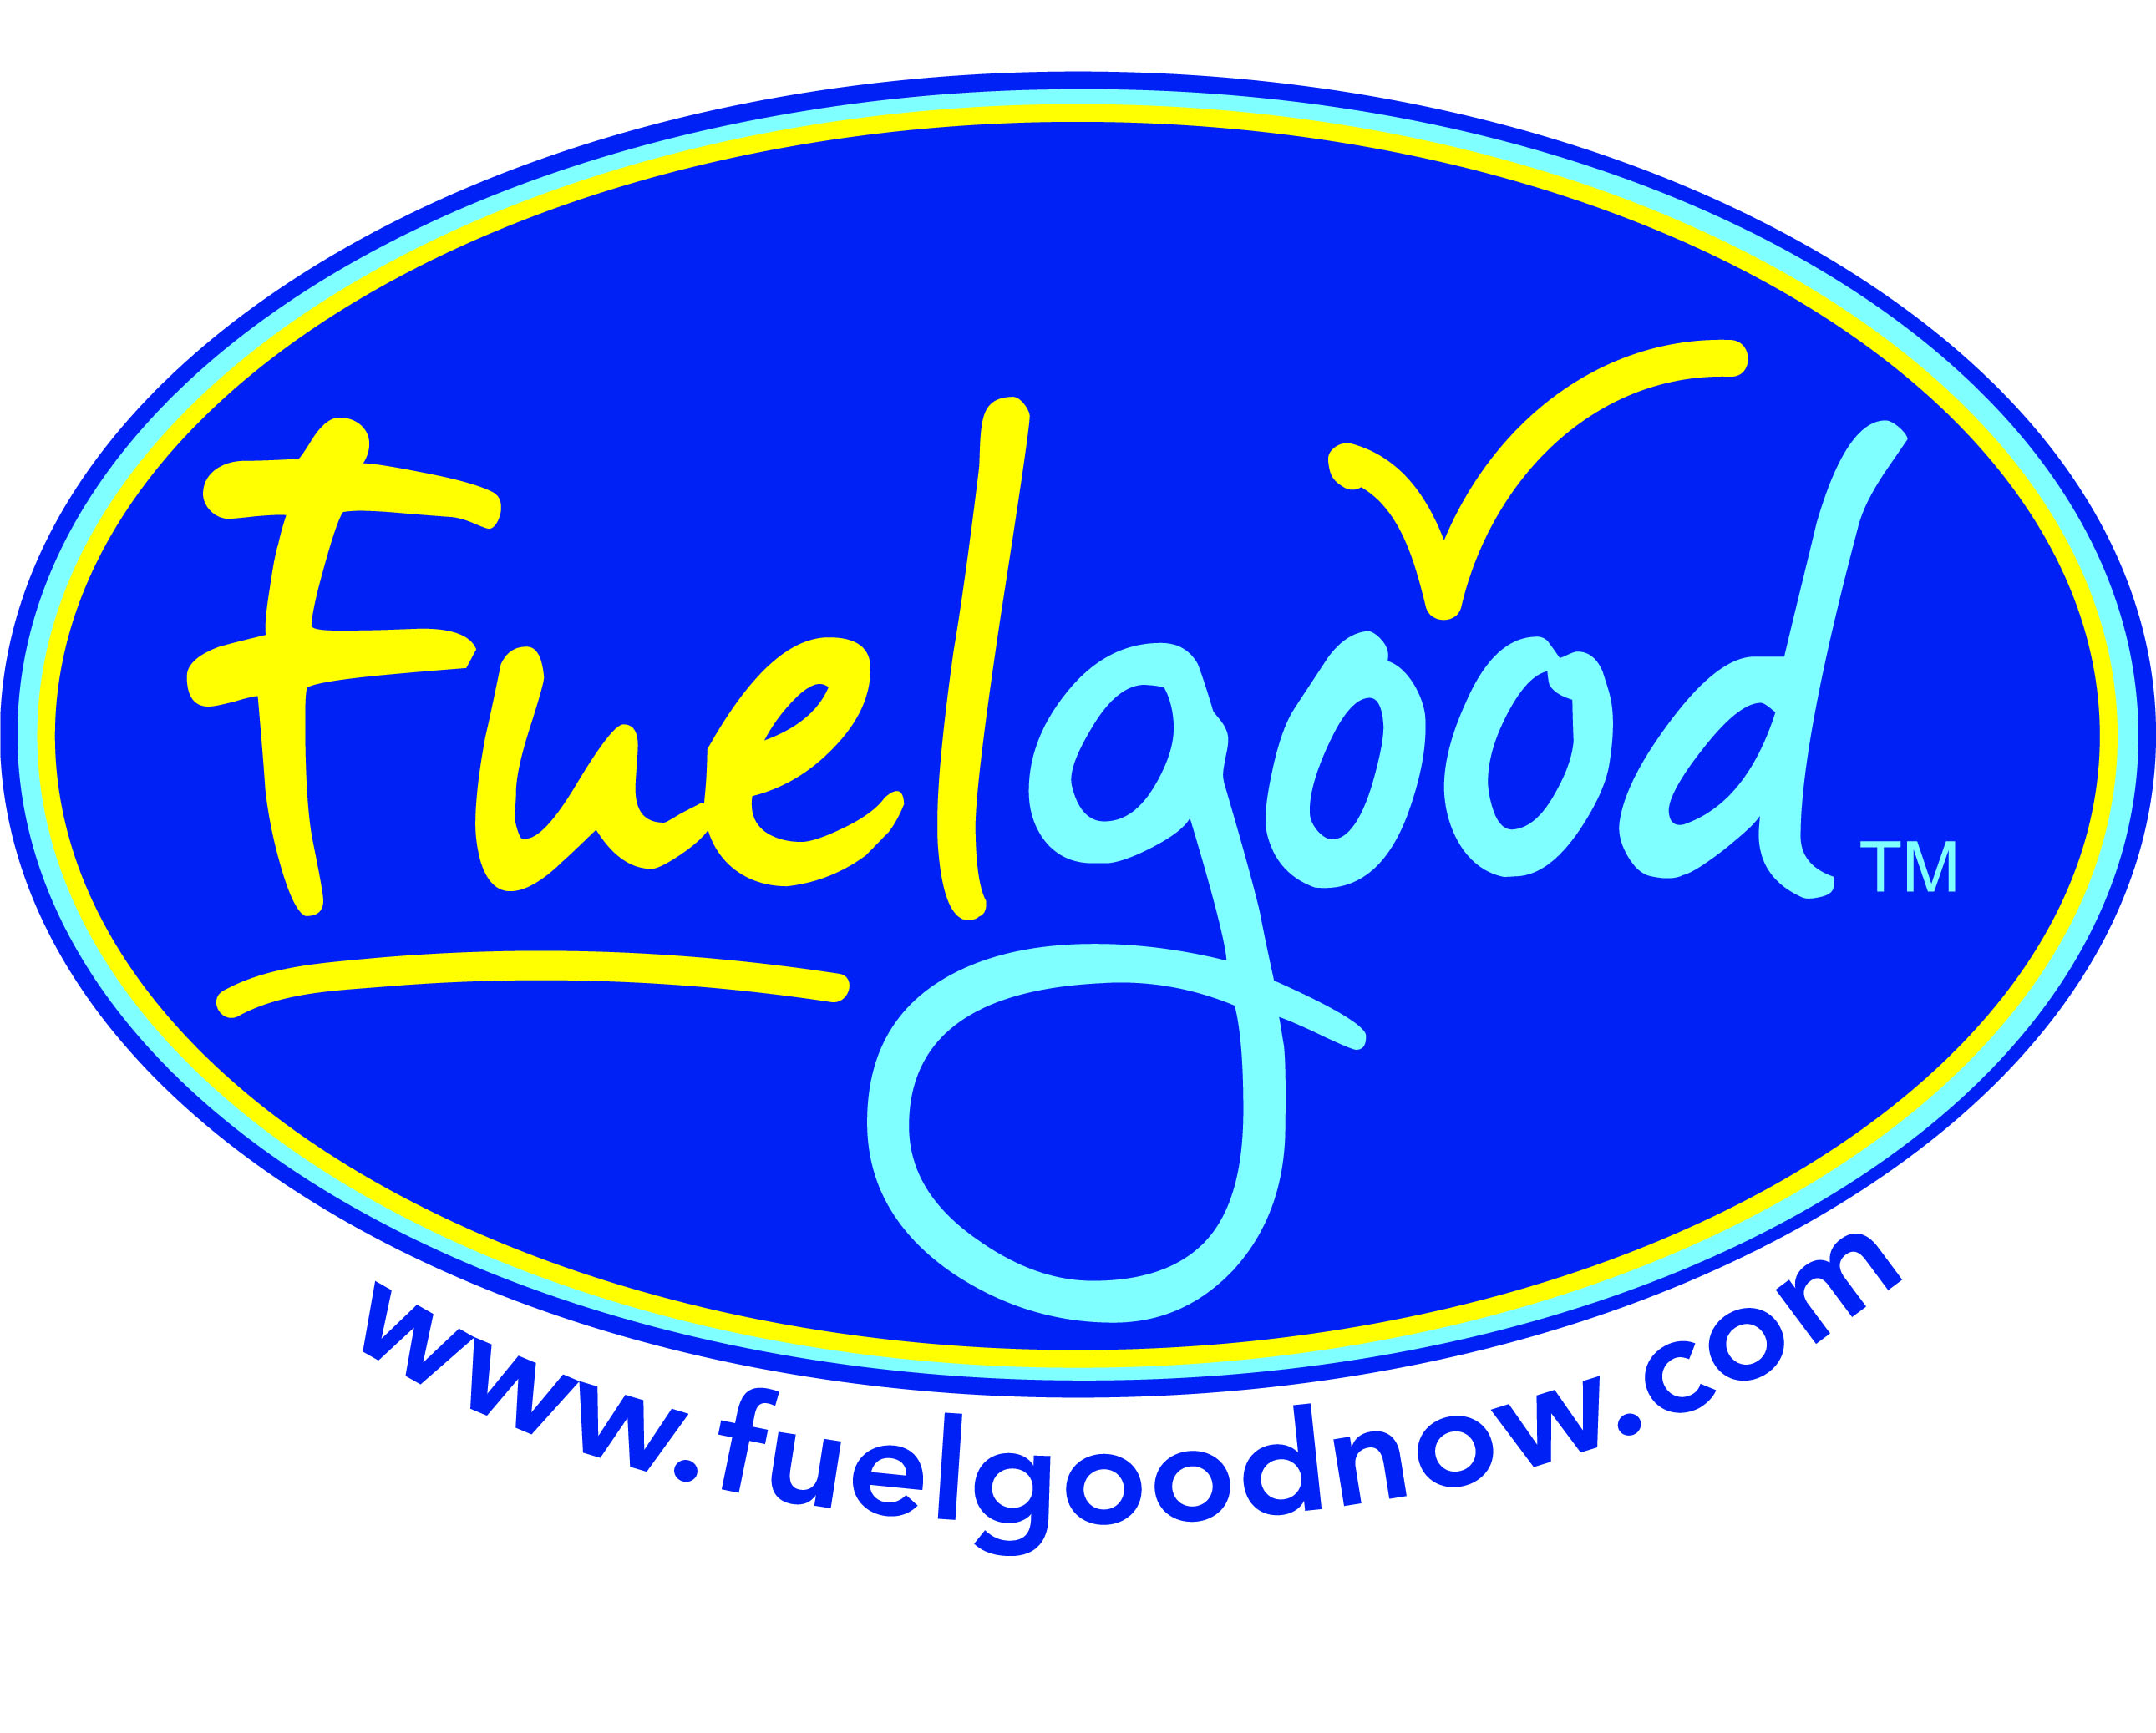 Visit fuelgoods website